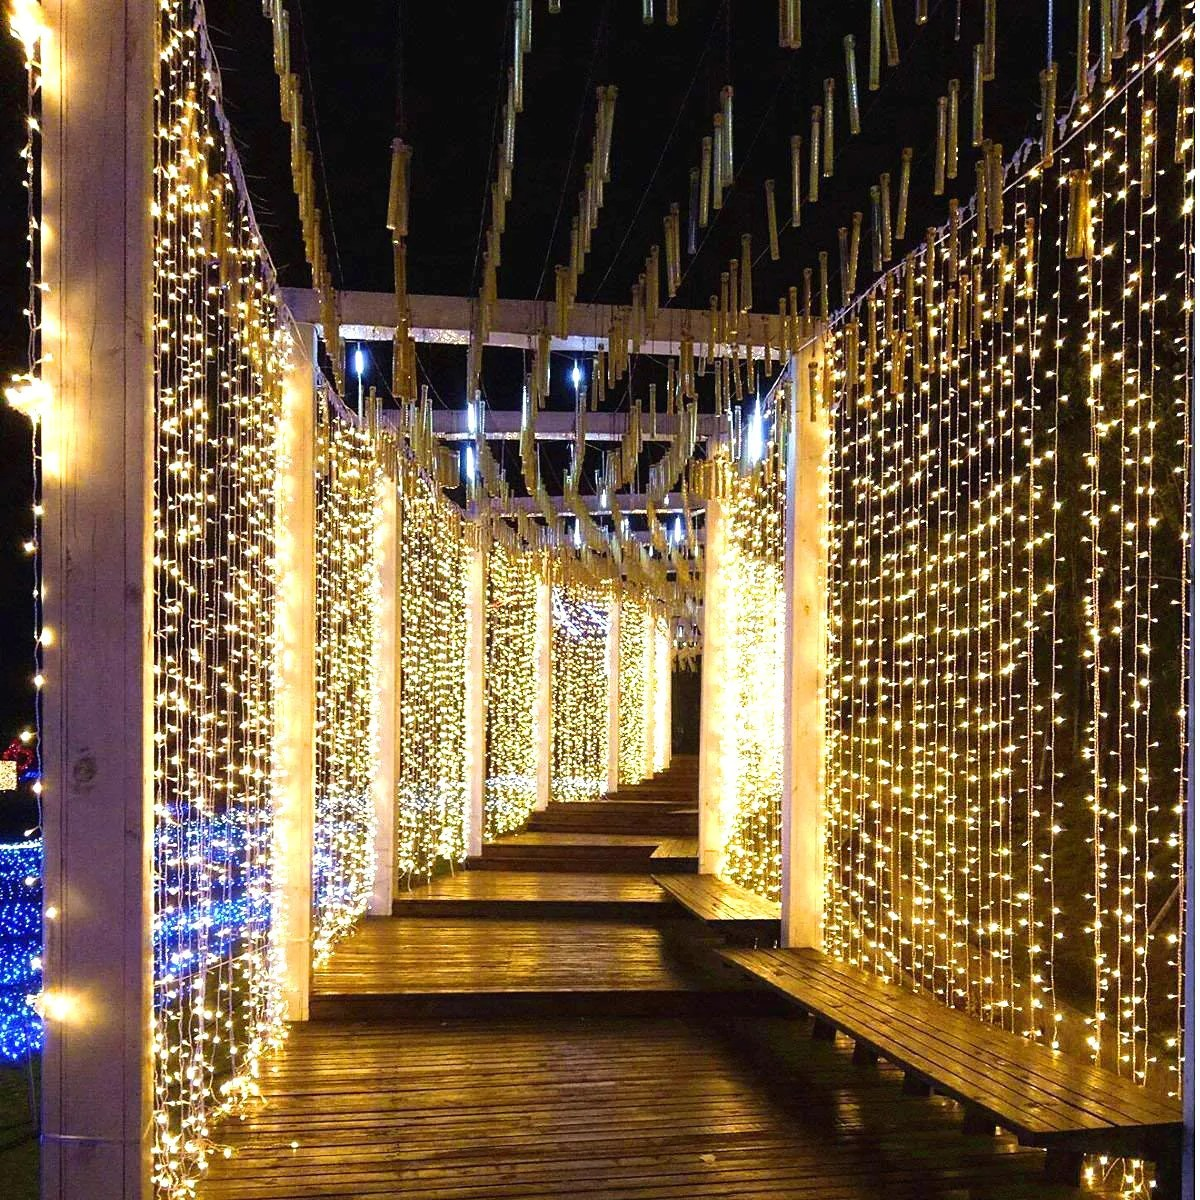 How To Make Curtain Lights Led Light String Curtain 8 Flashing Modes Decoration For Wedding Party Home Patio Warm White